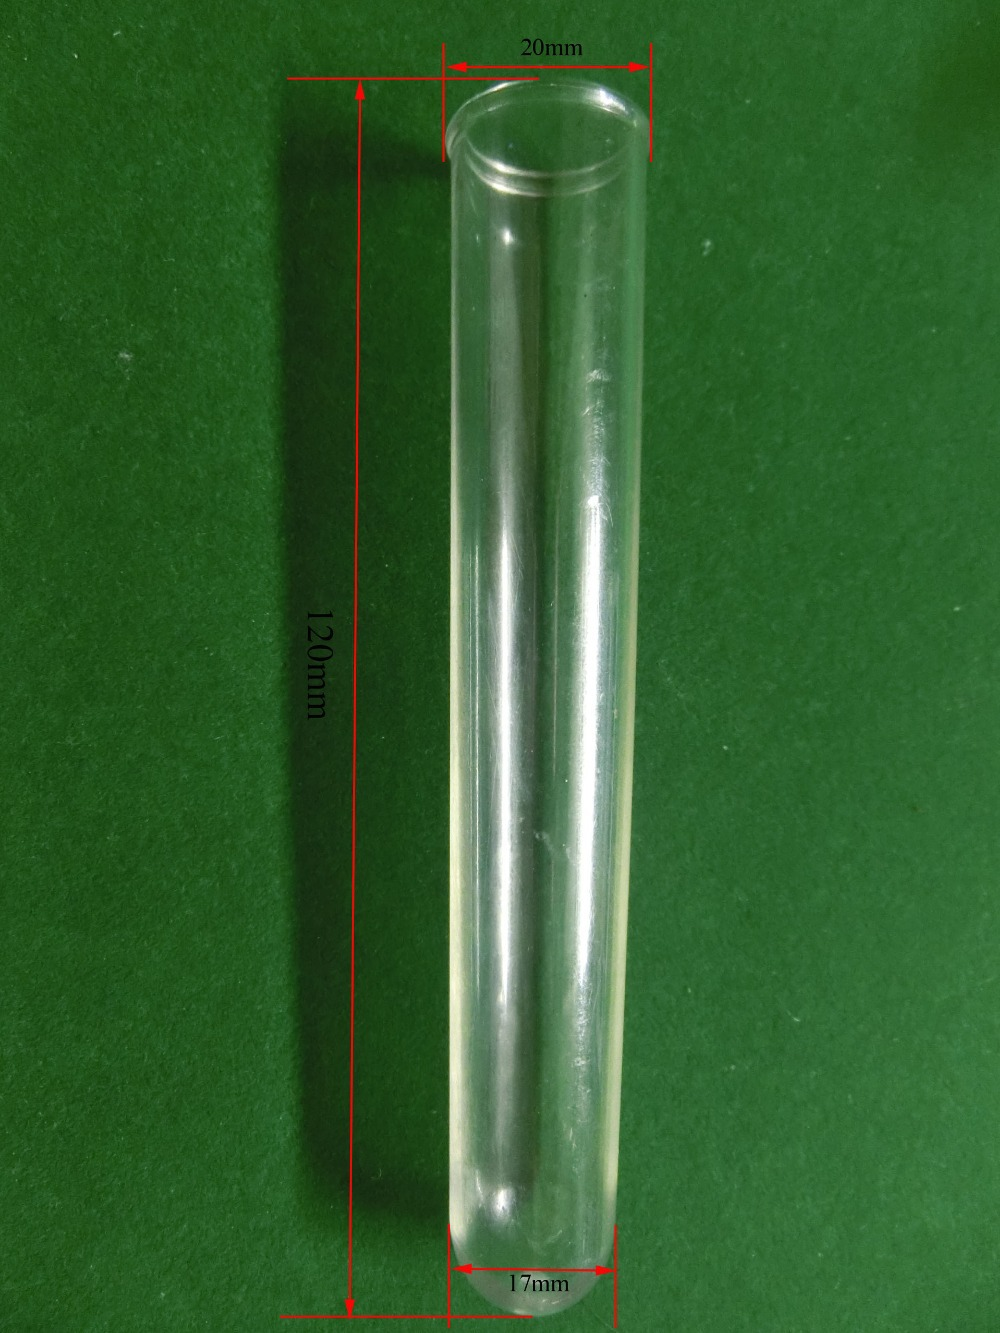 Free Shipping Plastic Lab Test Tube 10ml Vol  PET 120mm Length 20mm Diameter  Without Cap